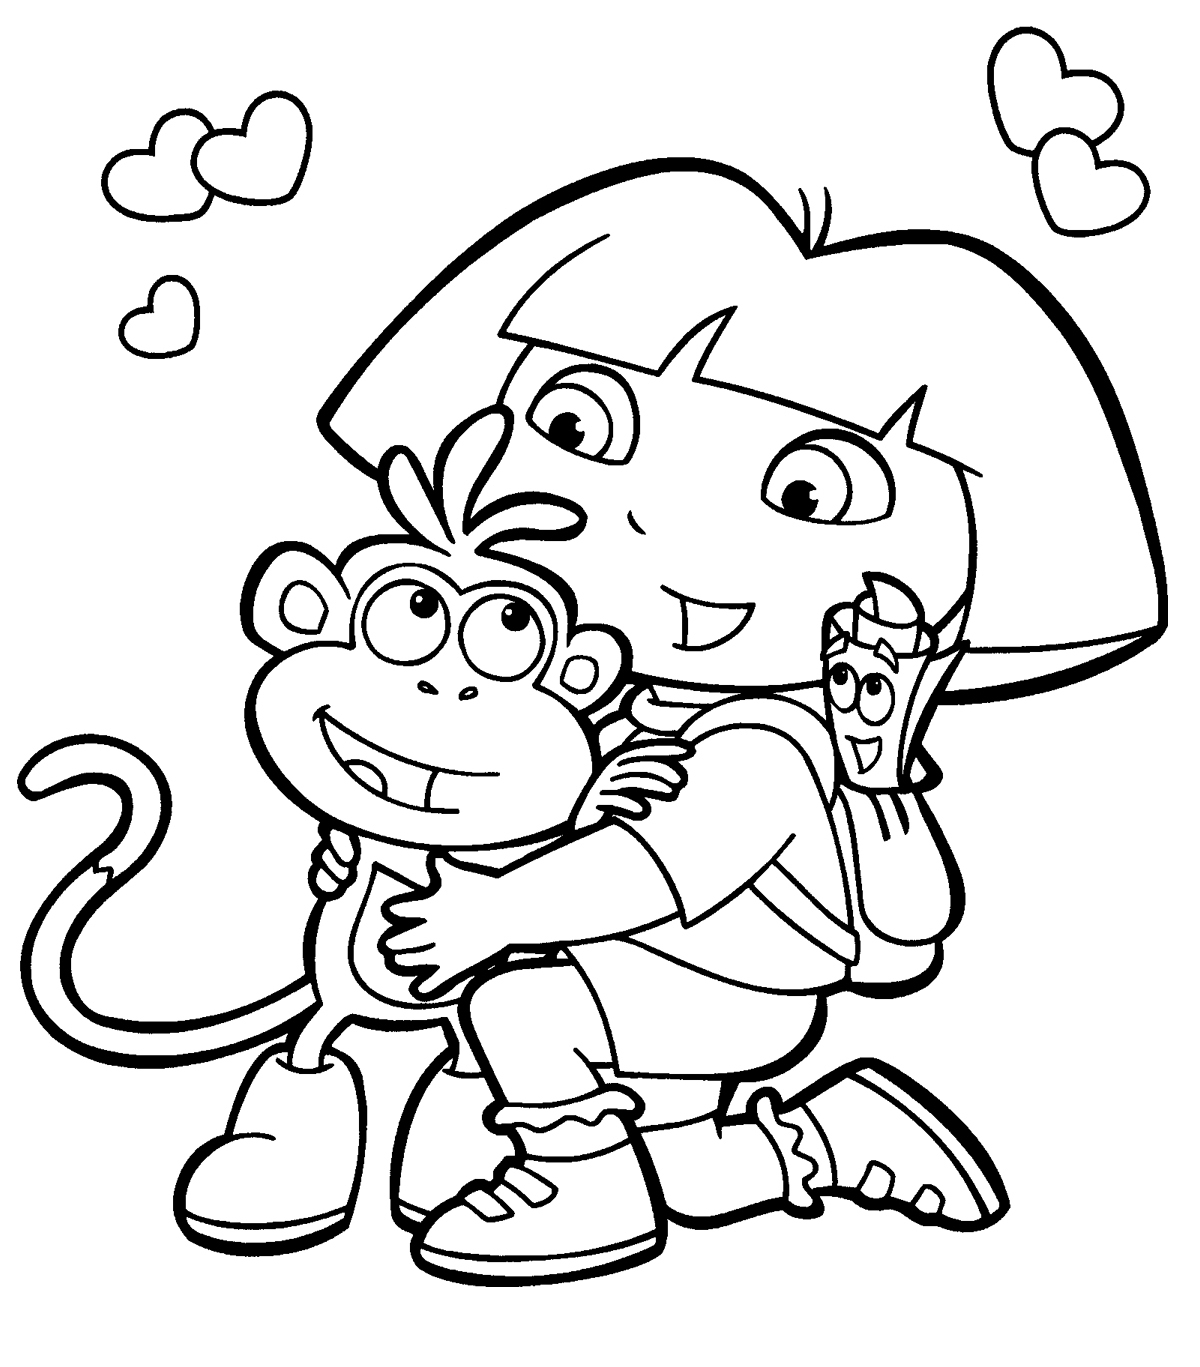 Fresh Disney Jr Coloring Pages Collection Gallery Of Nickalodeon Coloring Pages to Print